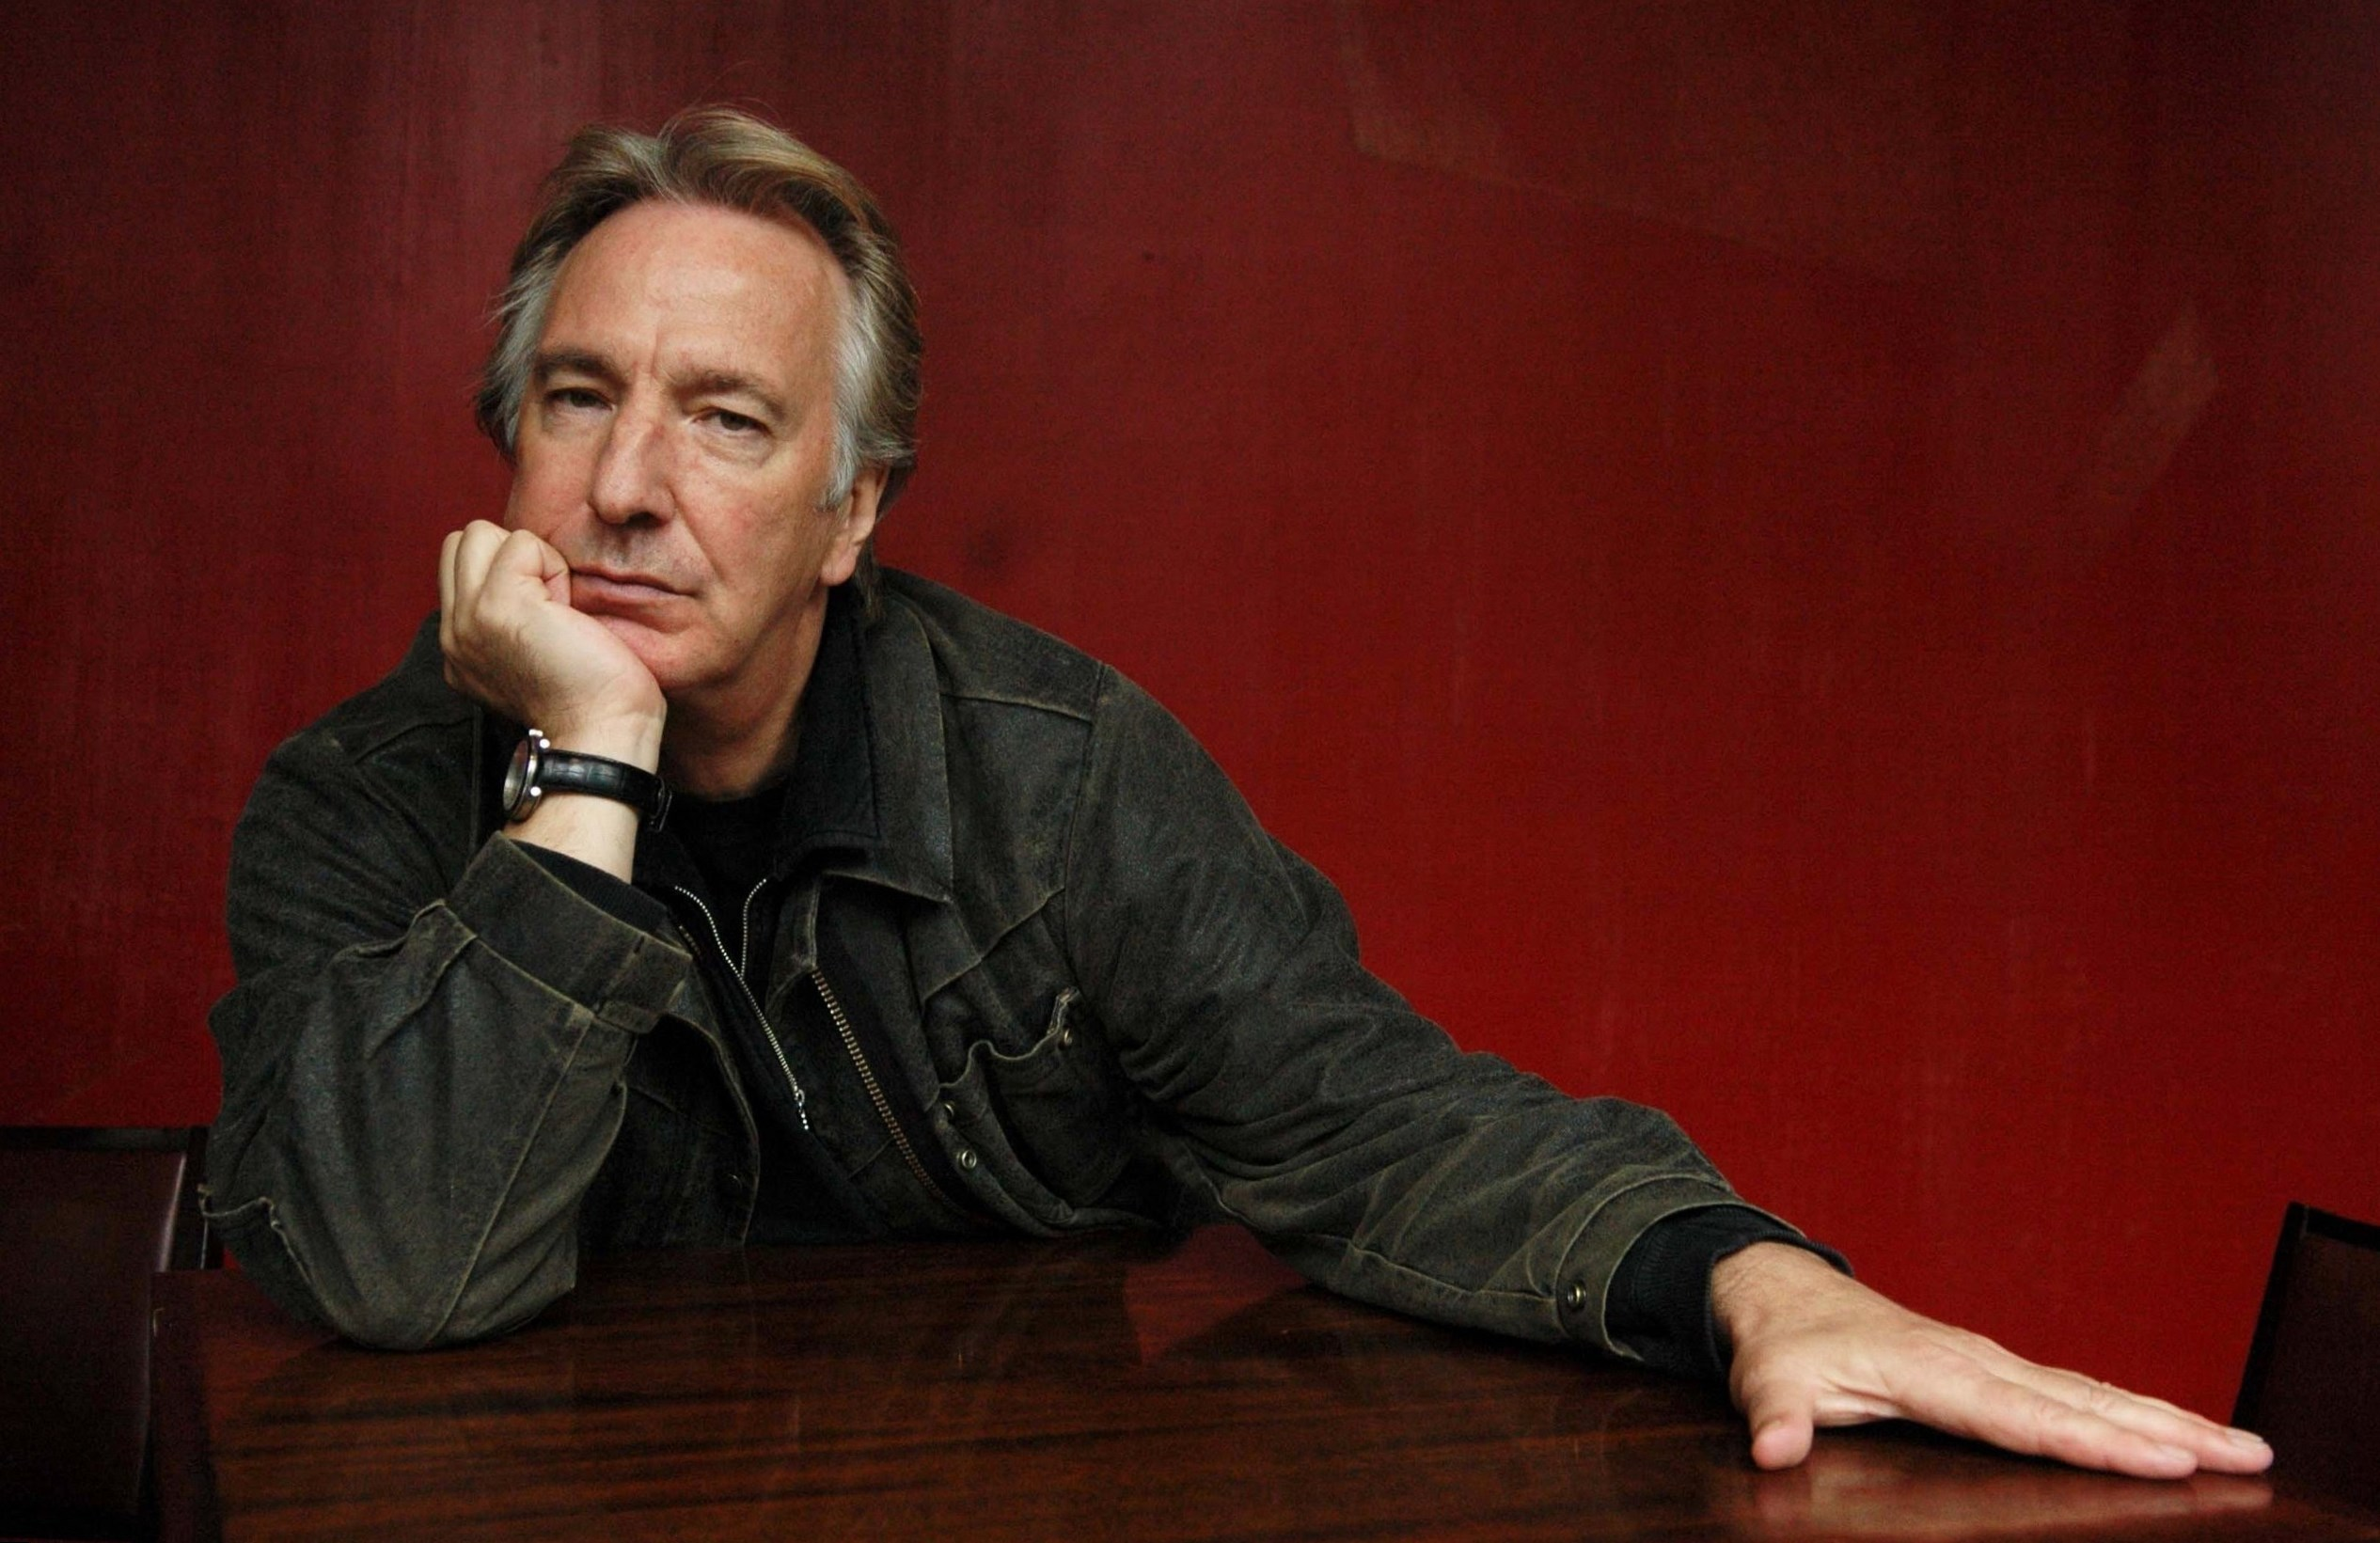 Alan Rickman weight, height and age. Body measurements!